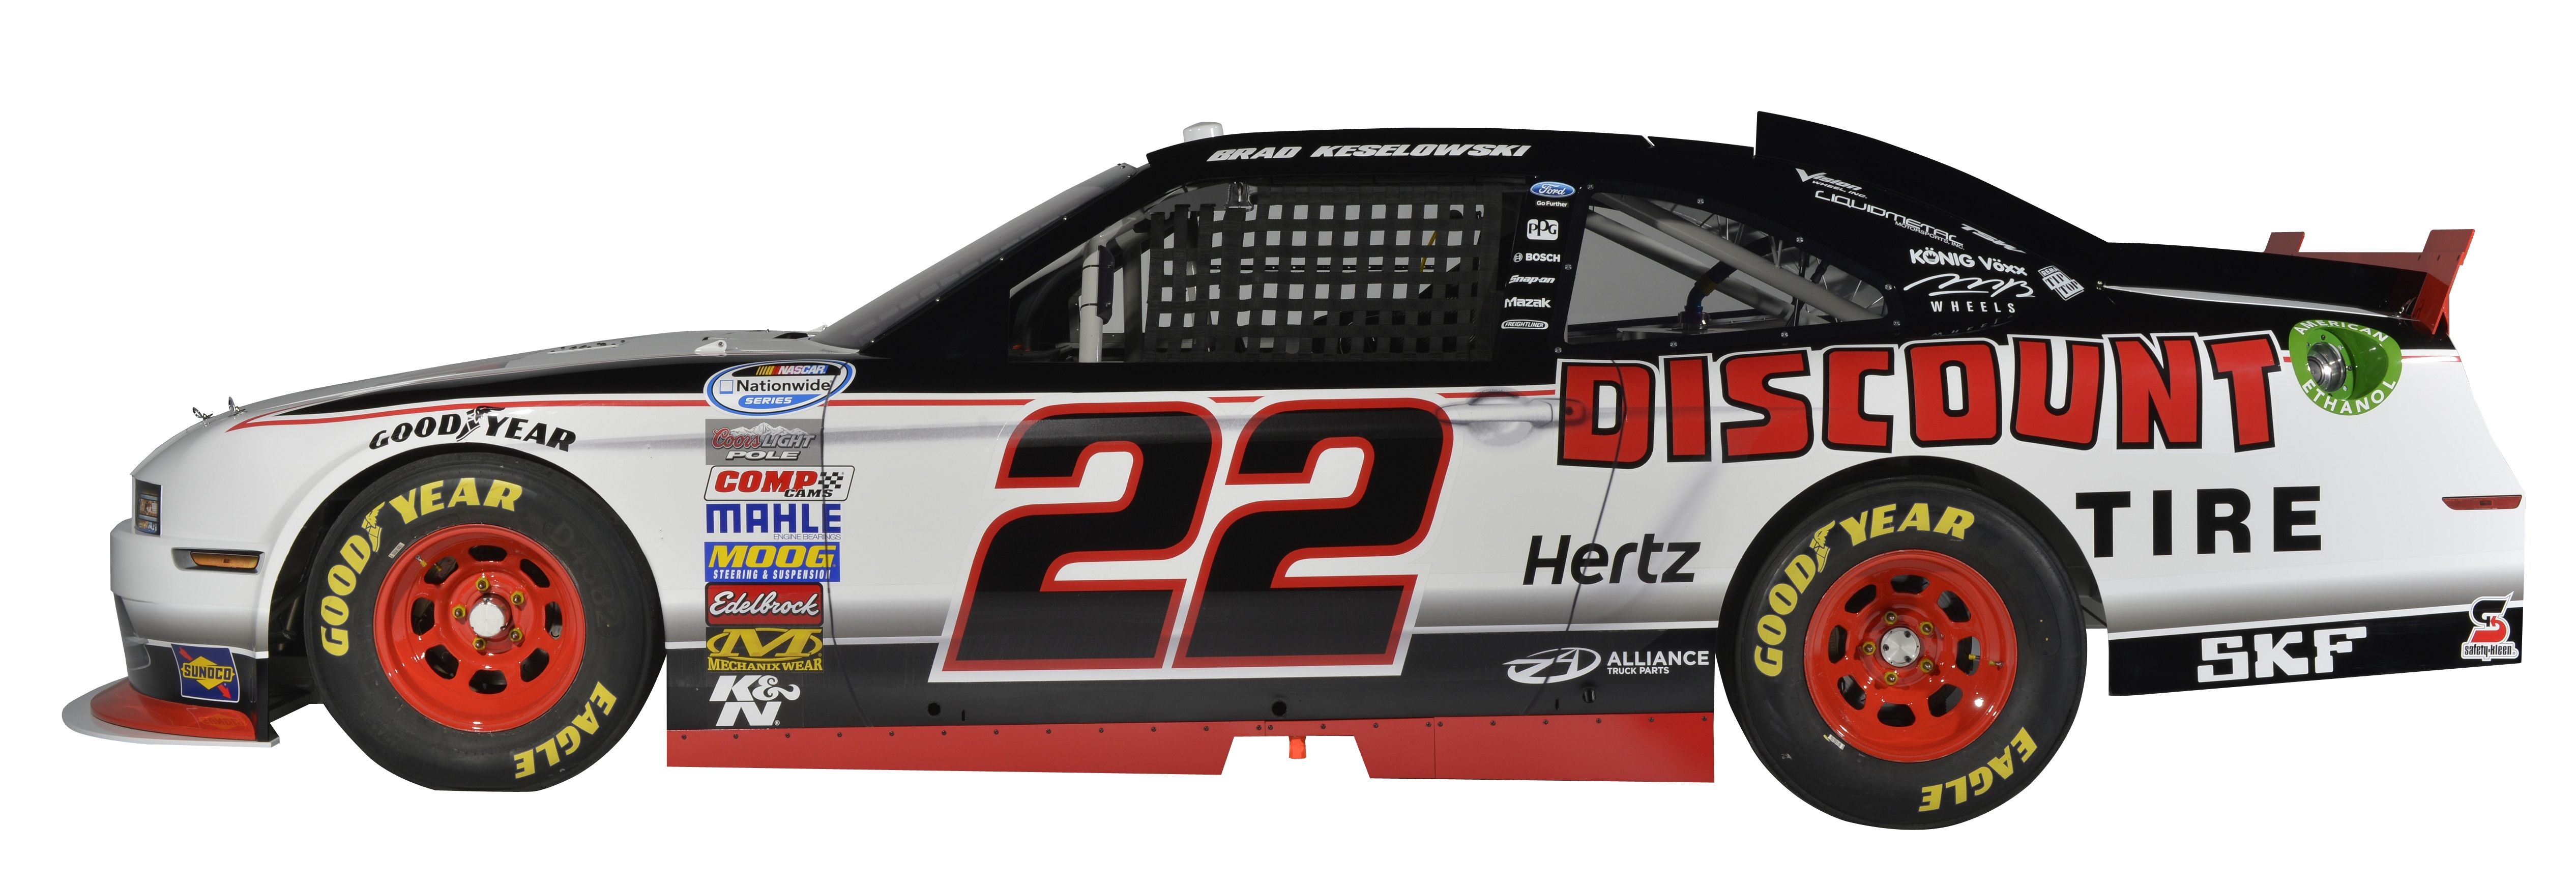 SKF to co-sponsor race car for NASCAR Nationwide Series ...